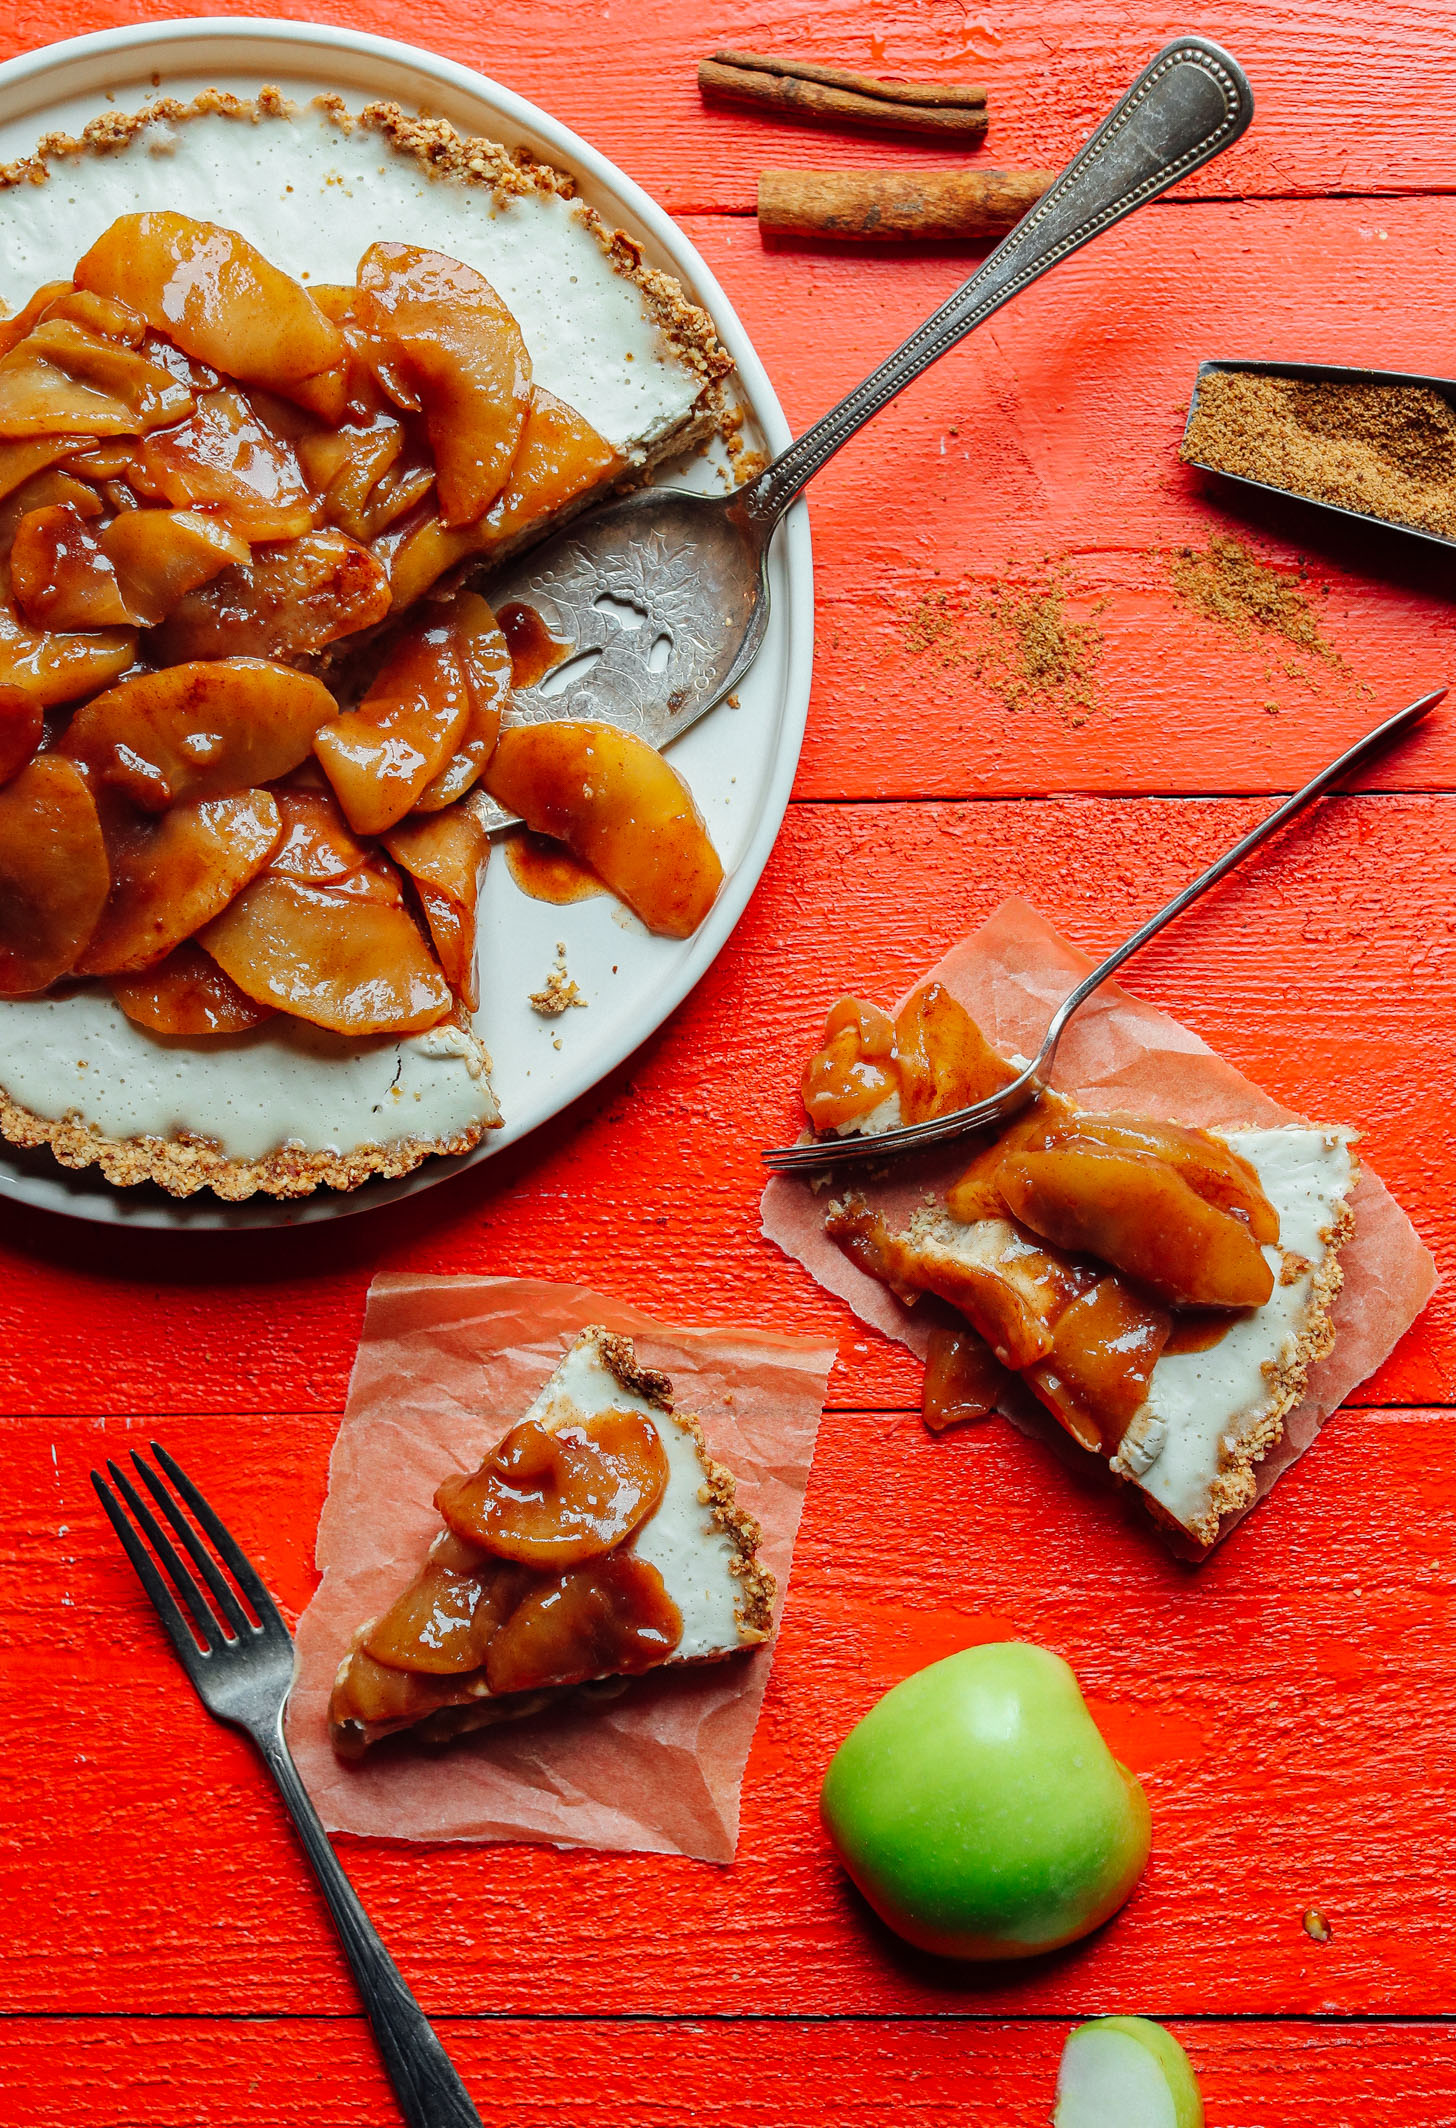 Slices of Caramel Apple Tart on parchment paper squares beside the whole dessert